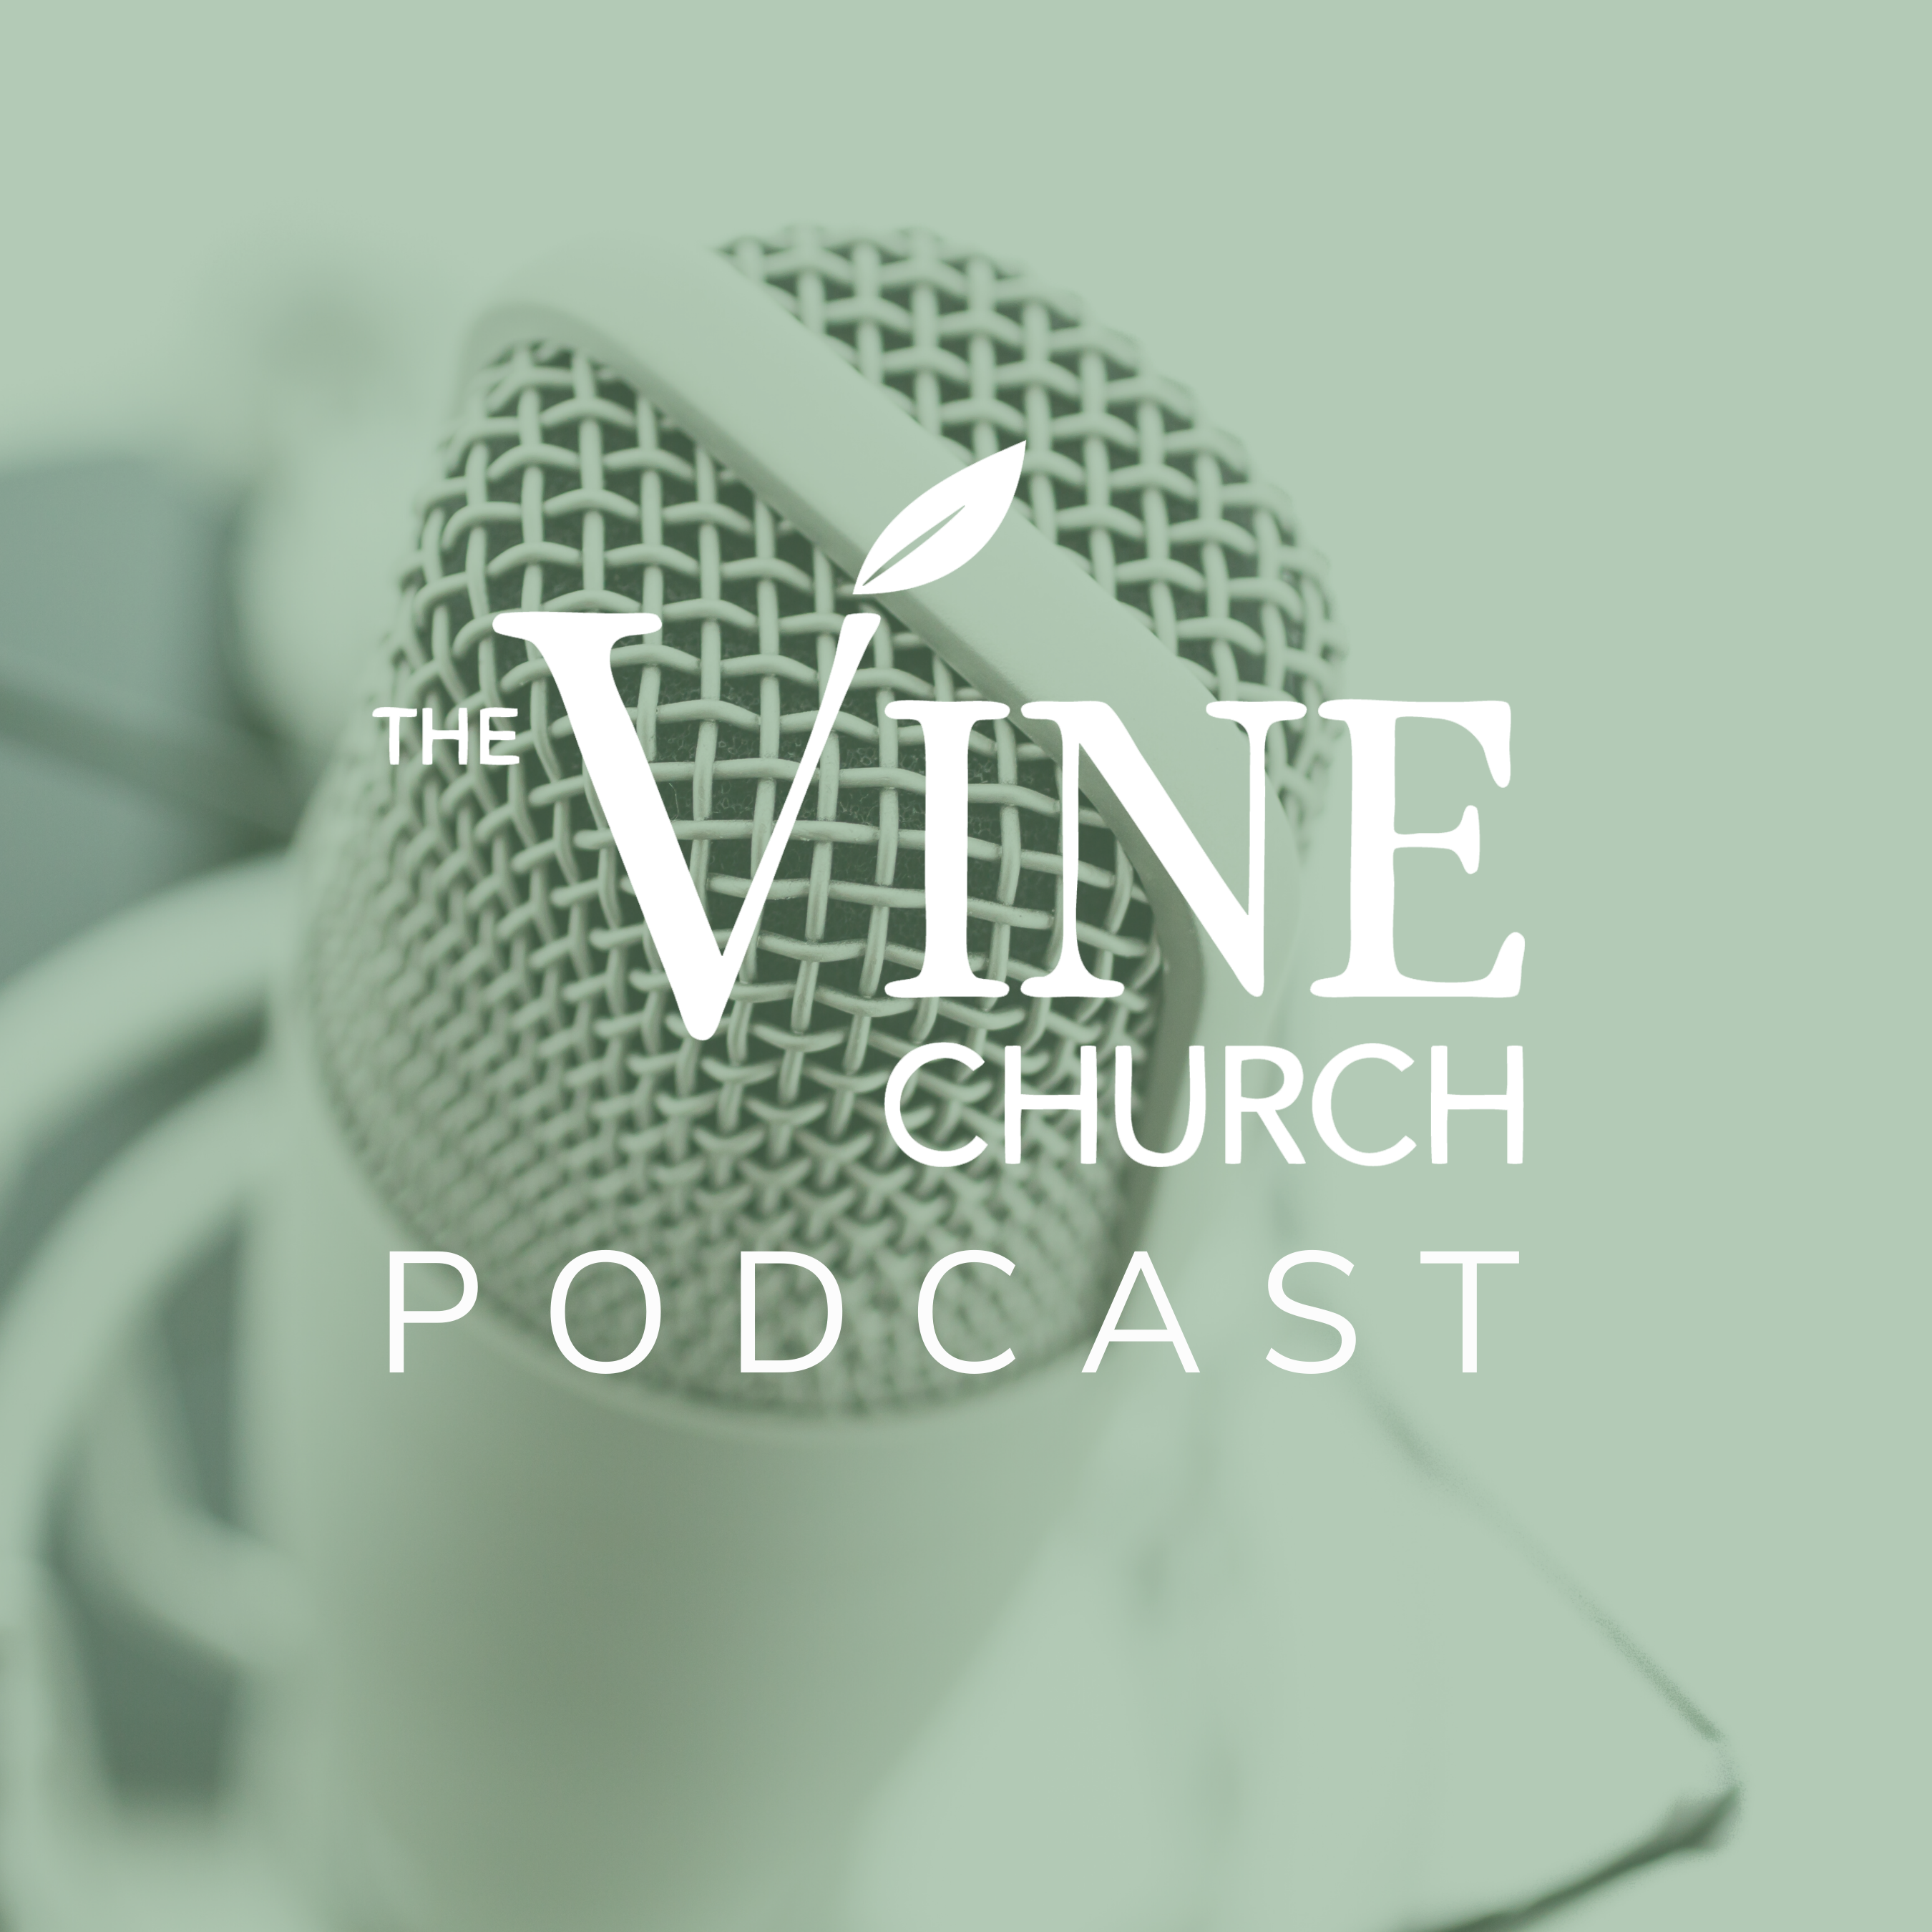 Why Should The Vine Church Care About Church Planting?